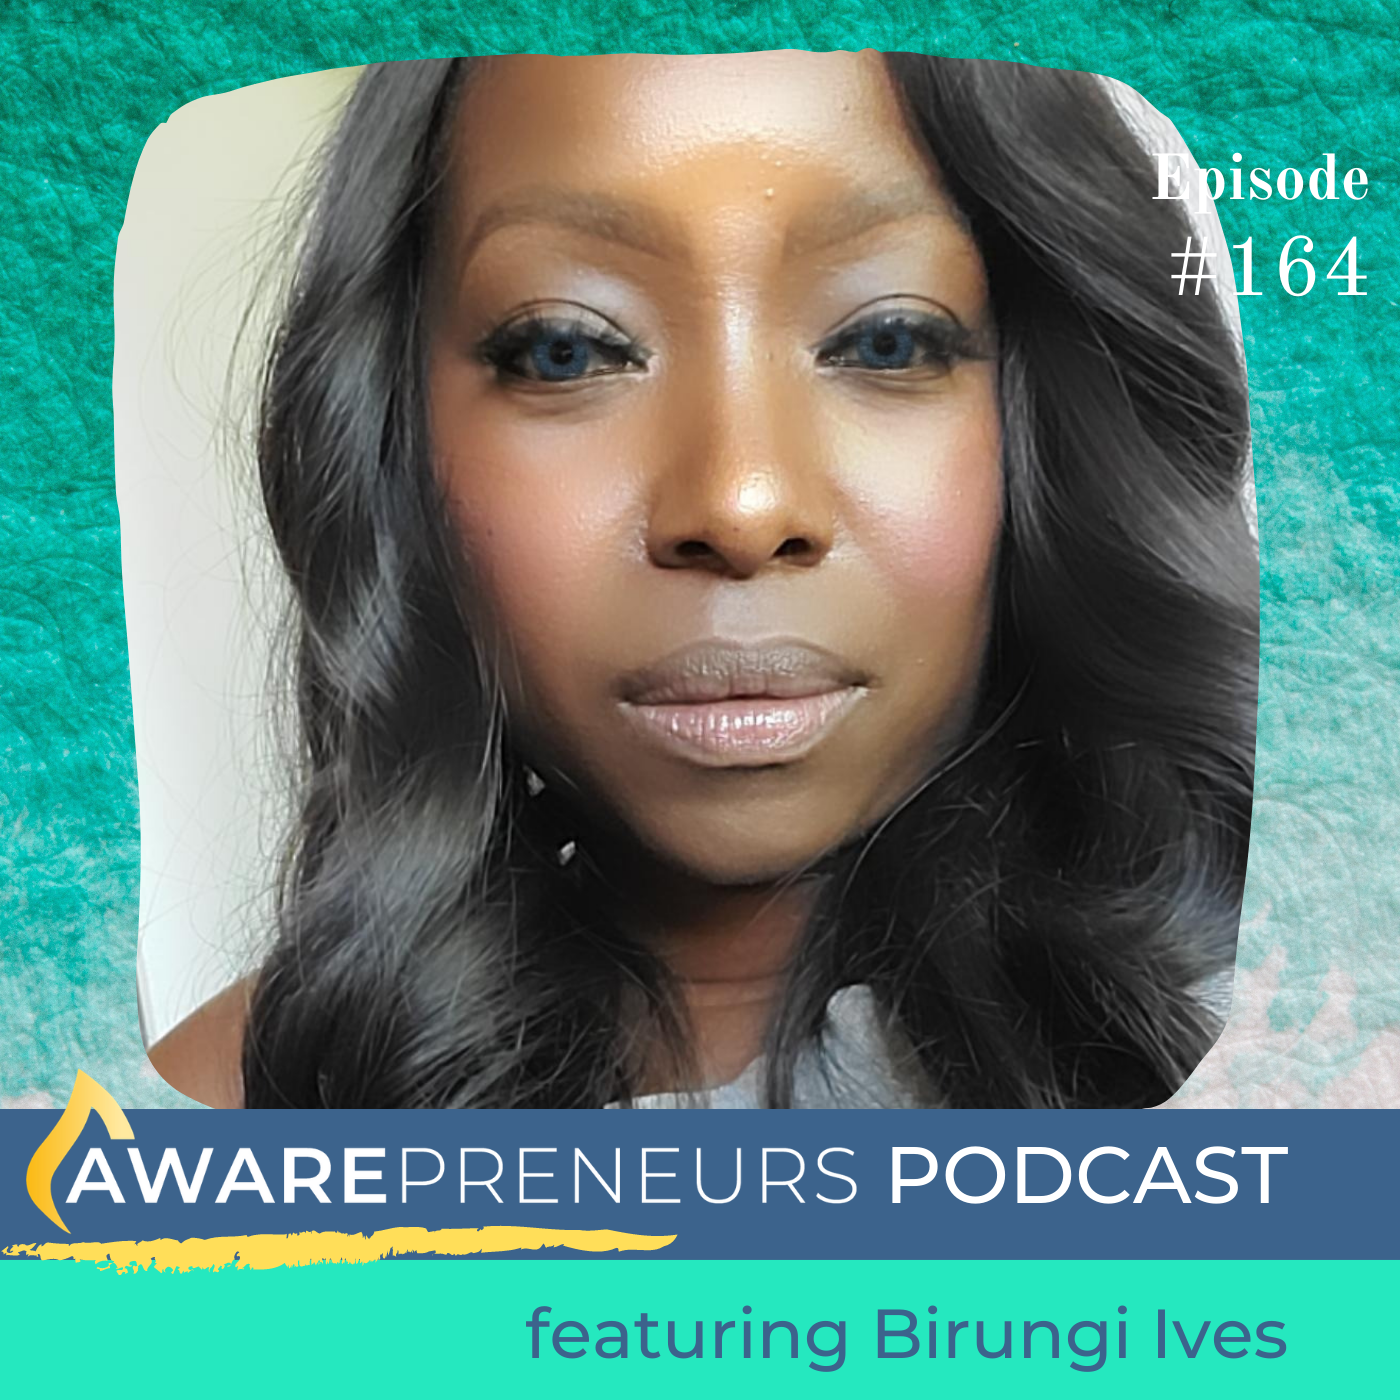 Awarepreneurs Podcaset featuring Birungi Ive